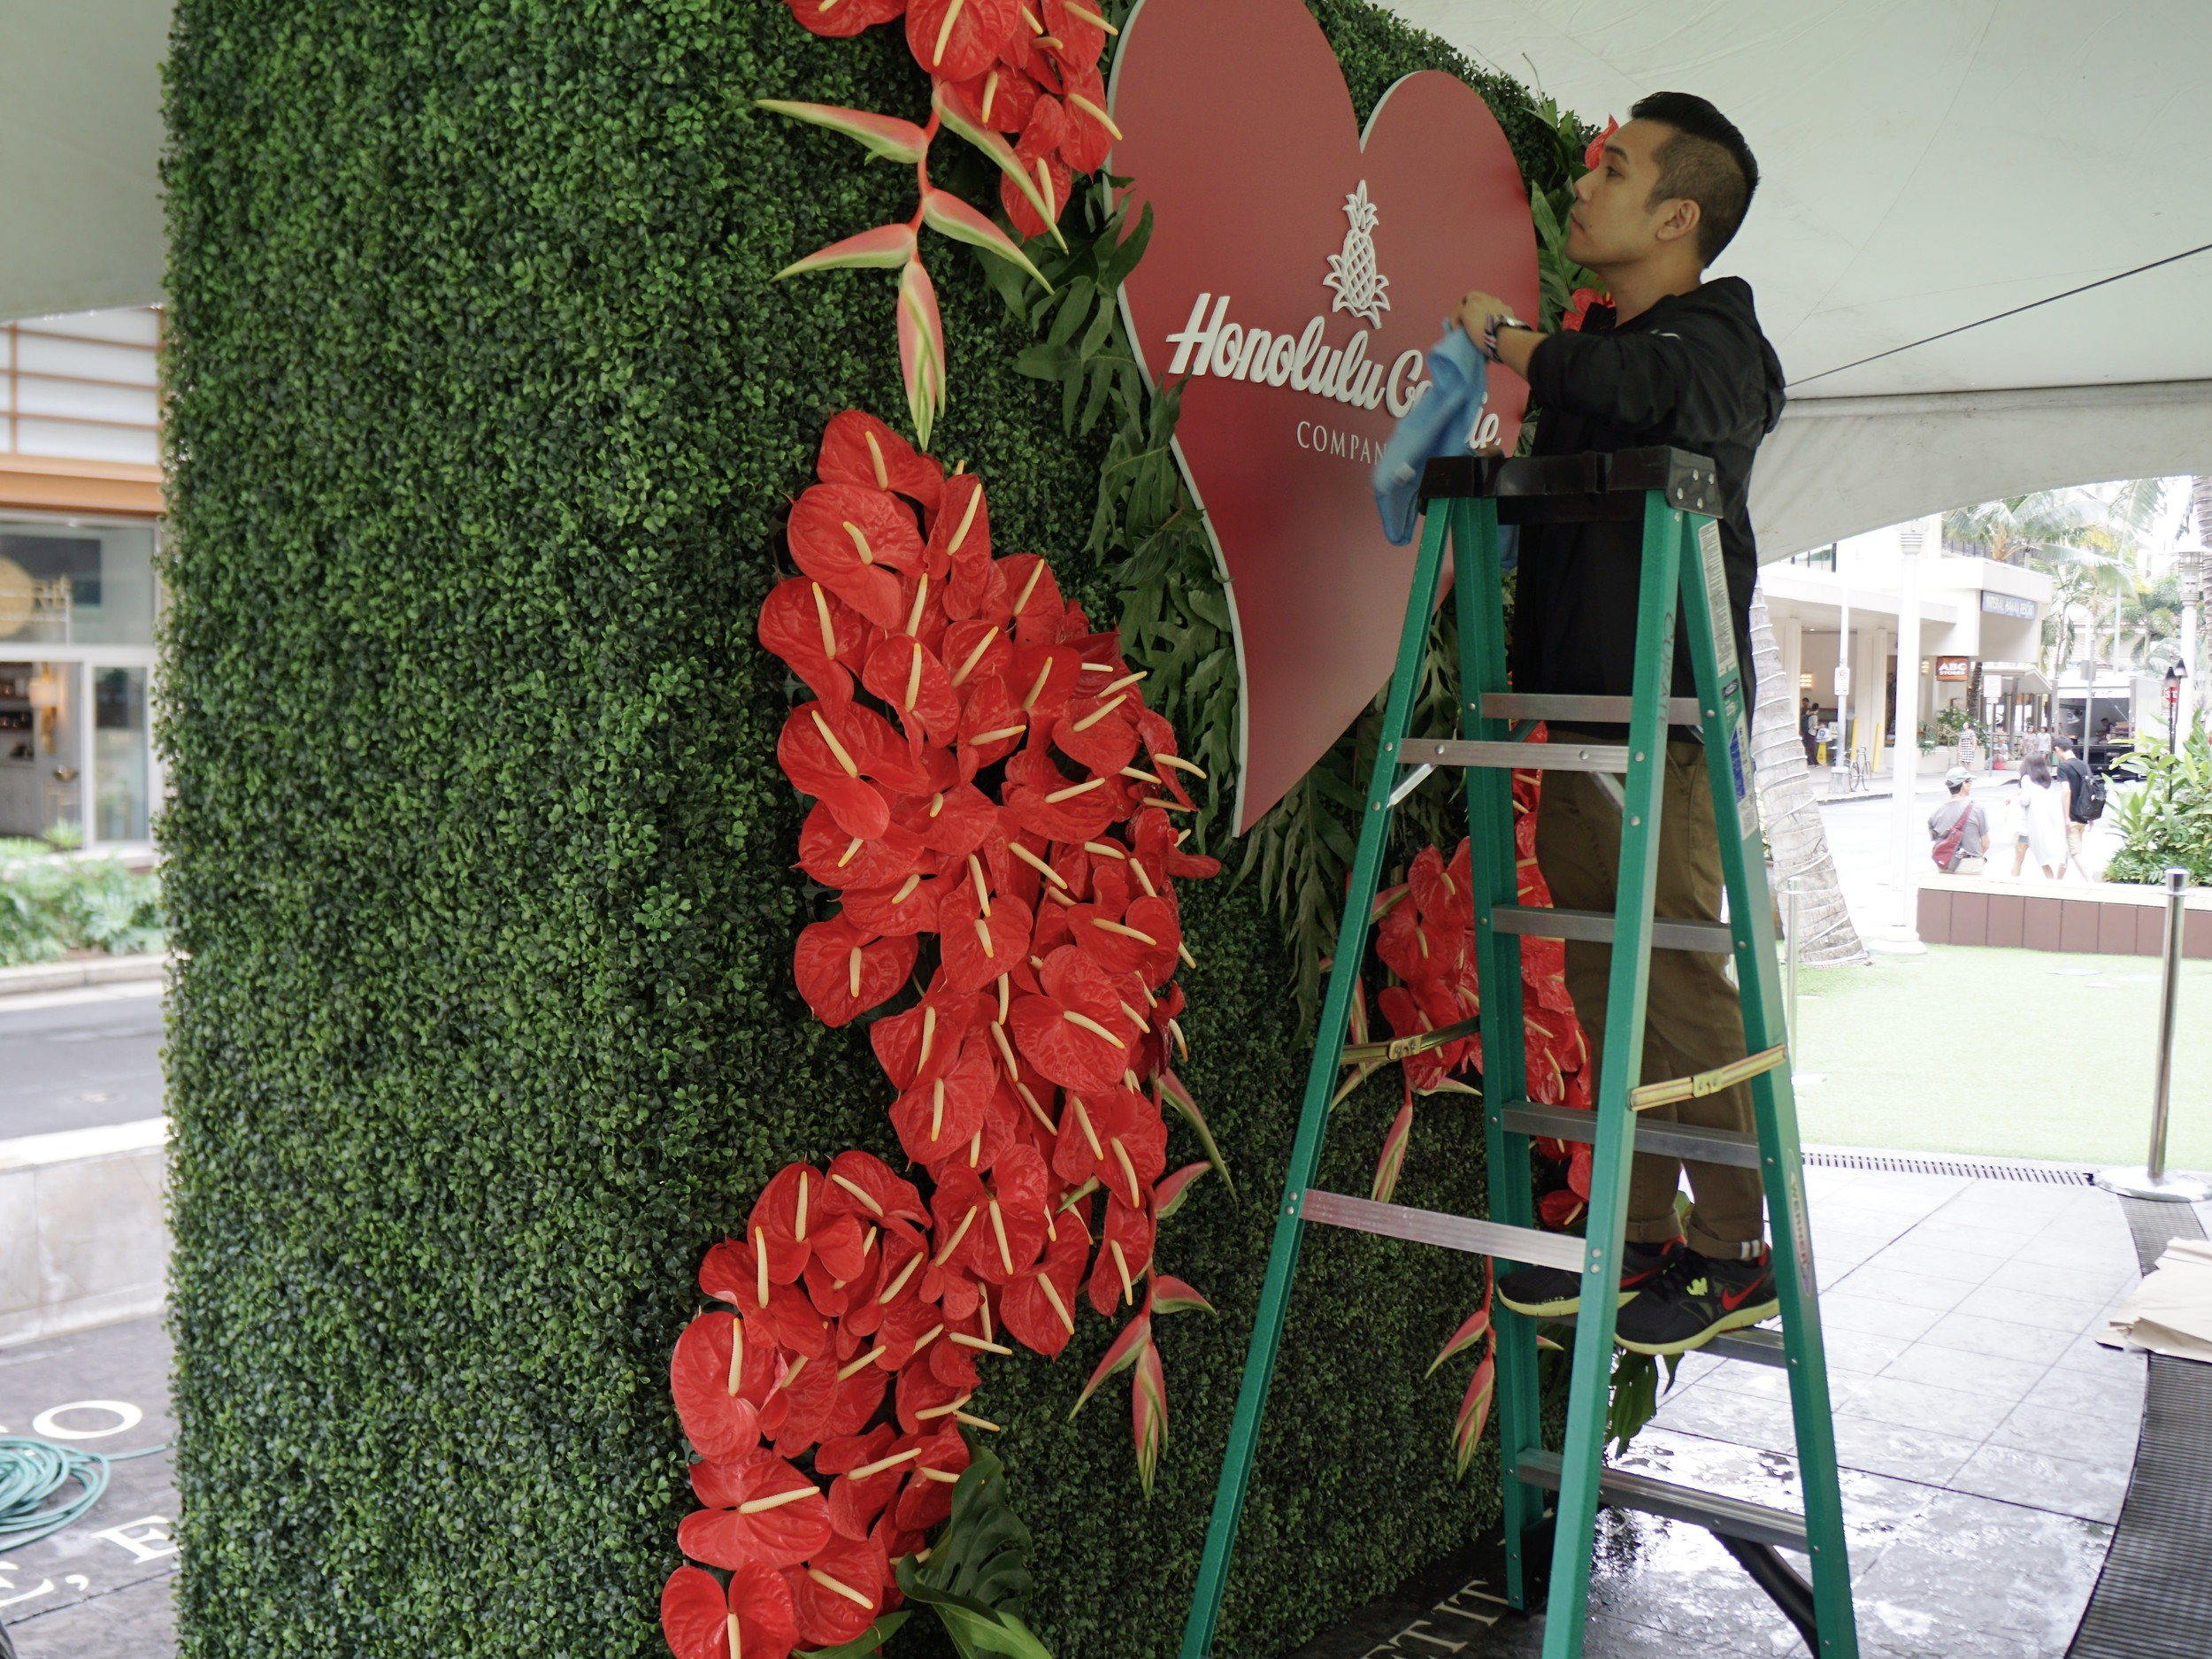 Final detailing of the floral wall and dimensional signage.